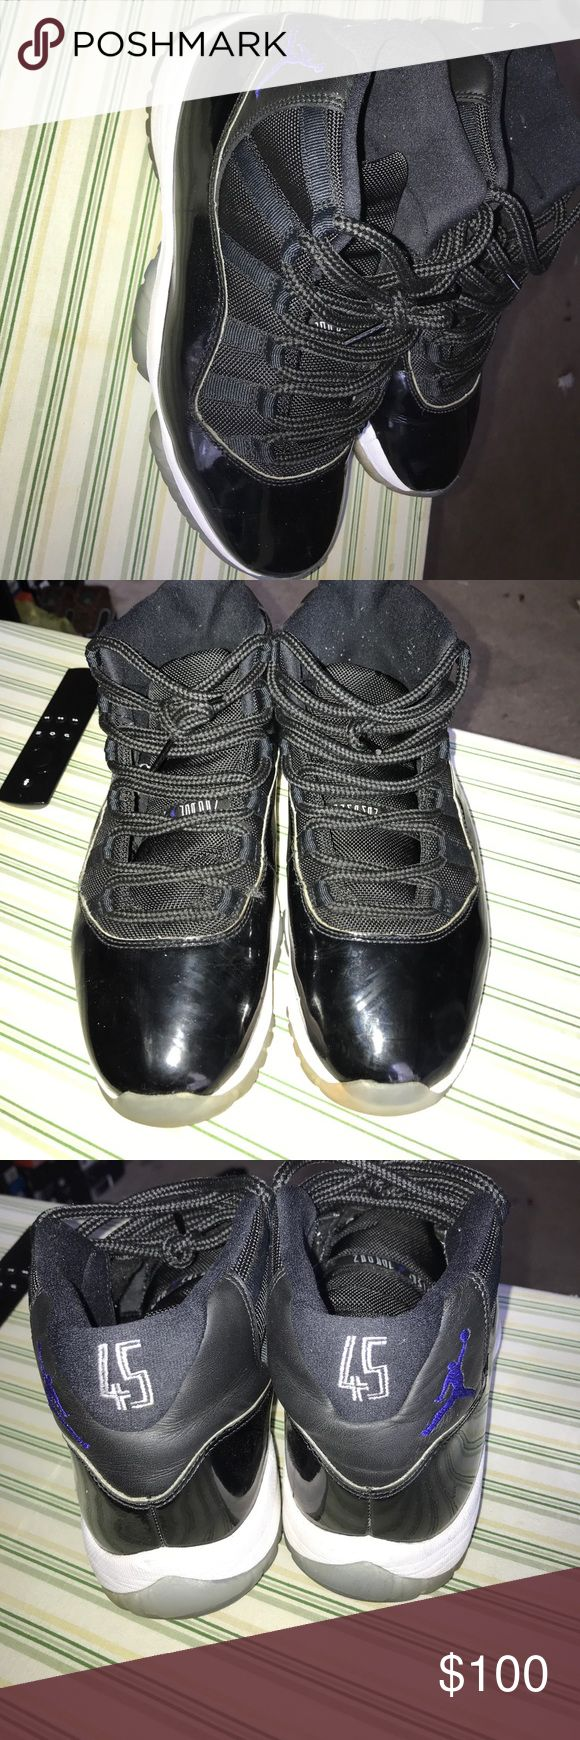 Jordan Retro 11 Space Jams 2016 Worn , renewable , 7/10 condition Jordan Shoes Sneakers